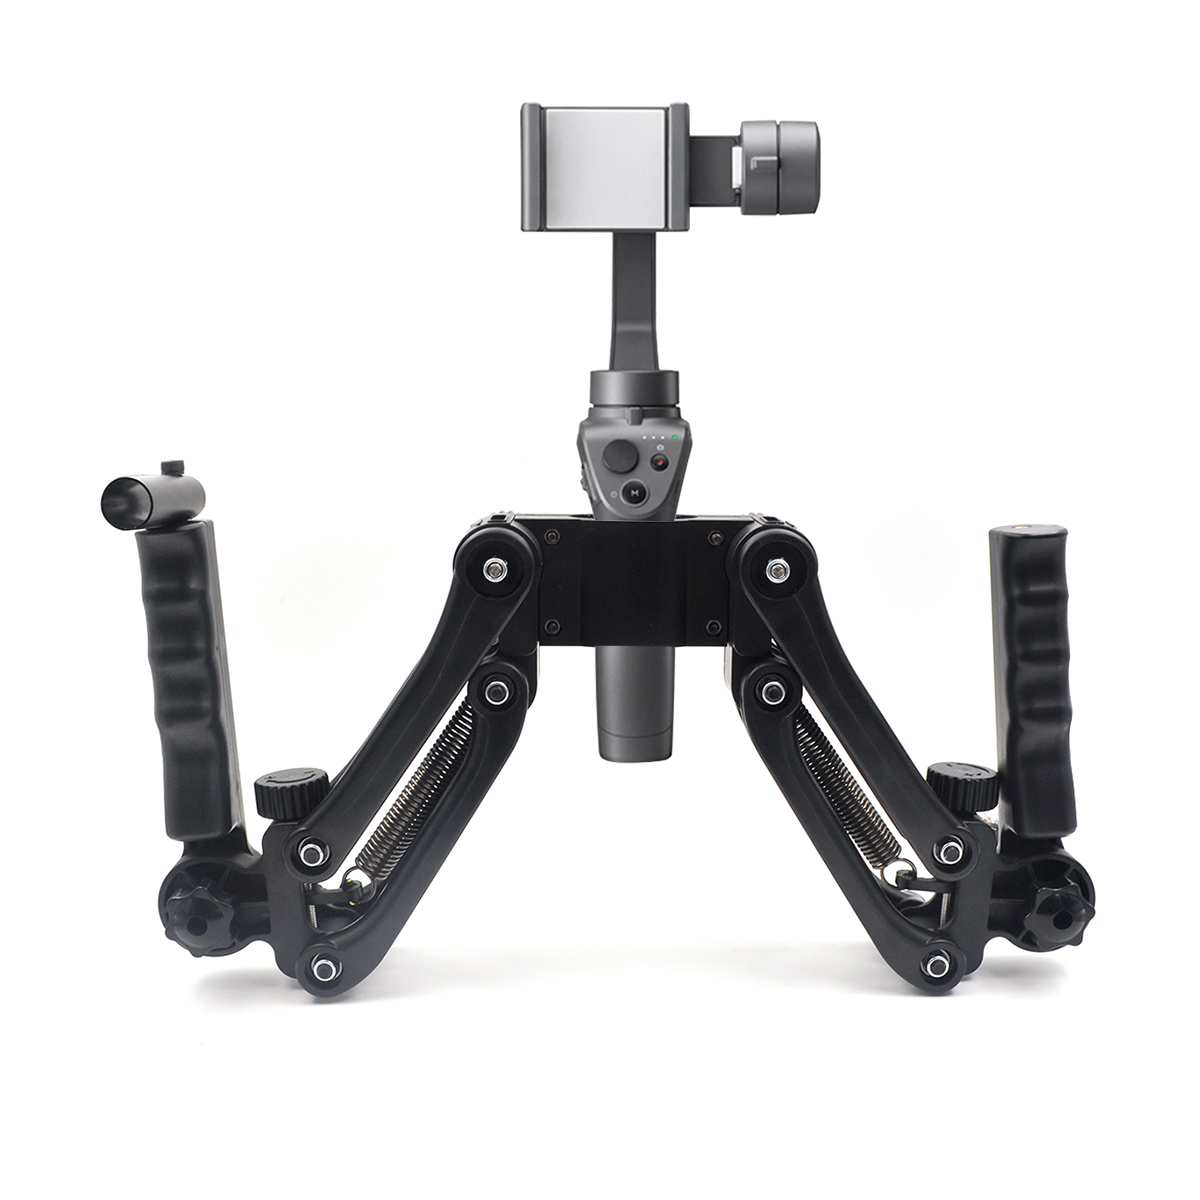 цена на Extension Stand Mount holder 4th Axis gimbal stabilizer for DJI Ronin S,DJI Osmo plus, Osmo Mobile/Pro